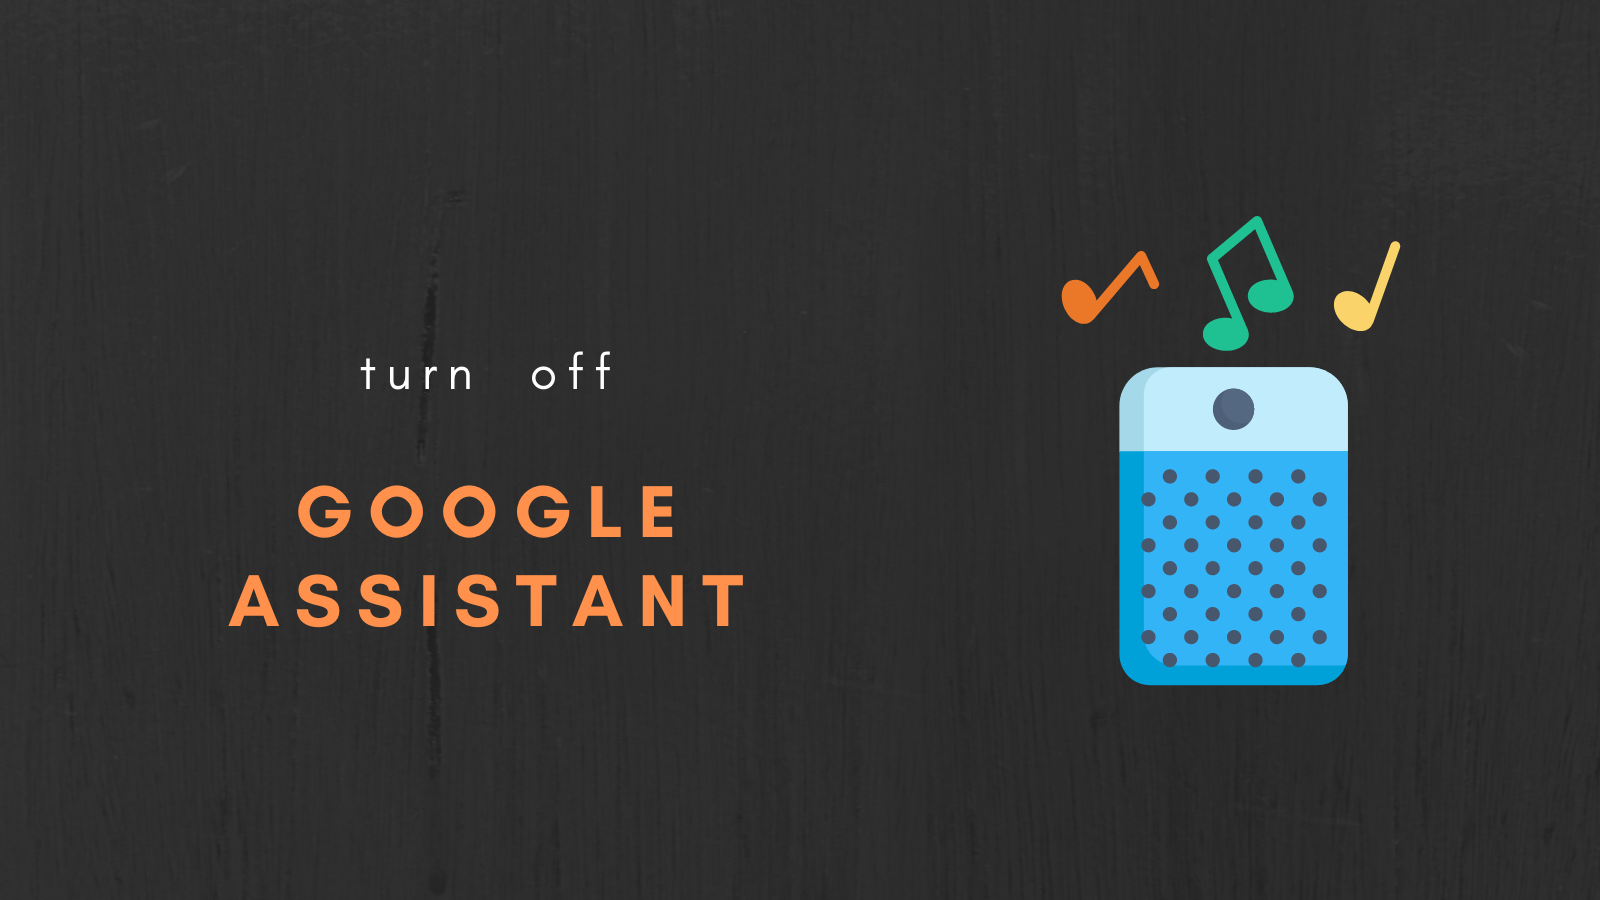 How Do I Turn Off Google Assistant?